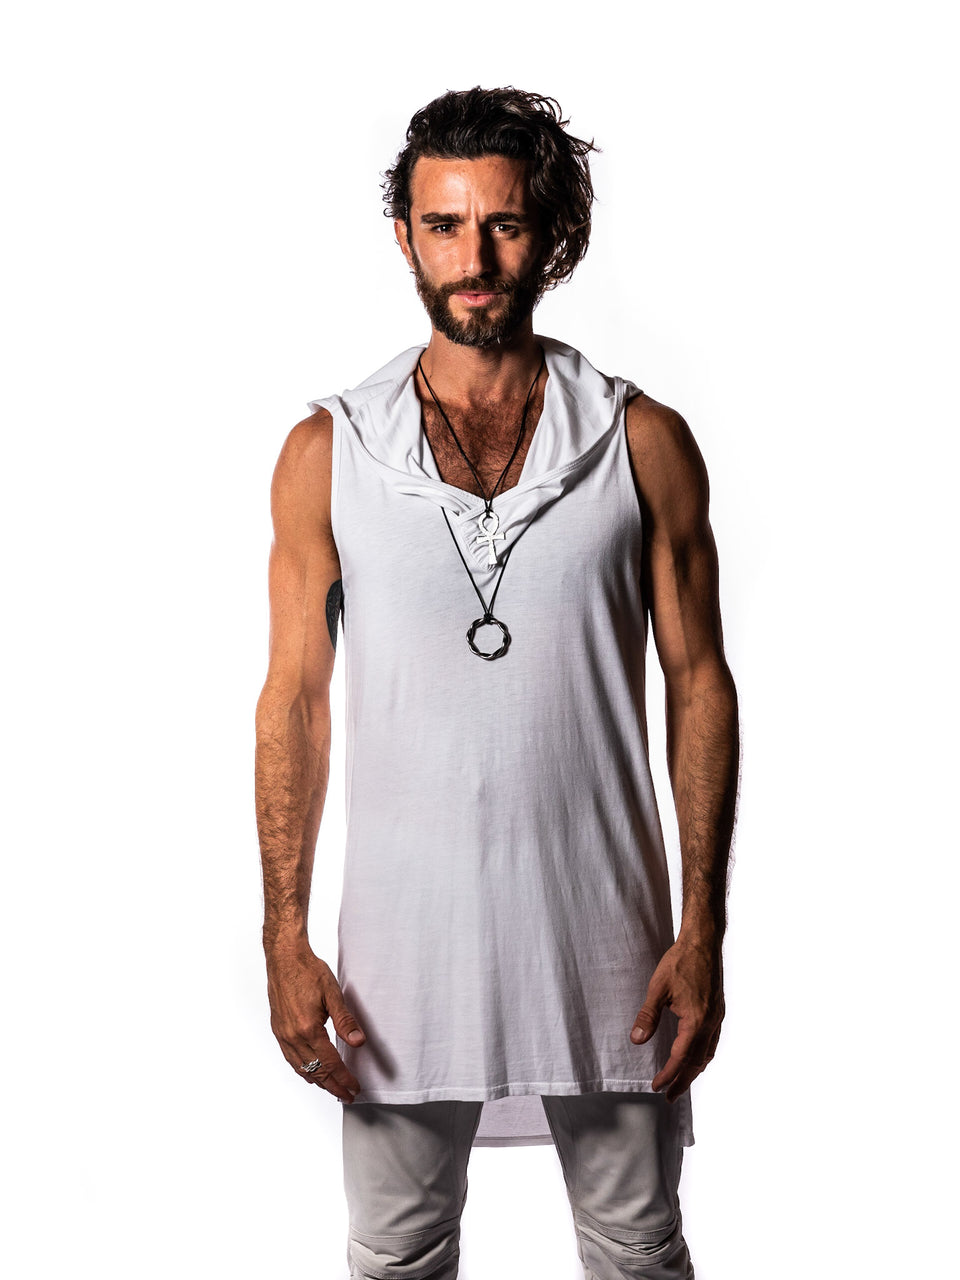 Sleeveless V-Neck Shirt with Hood - Illuminated White